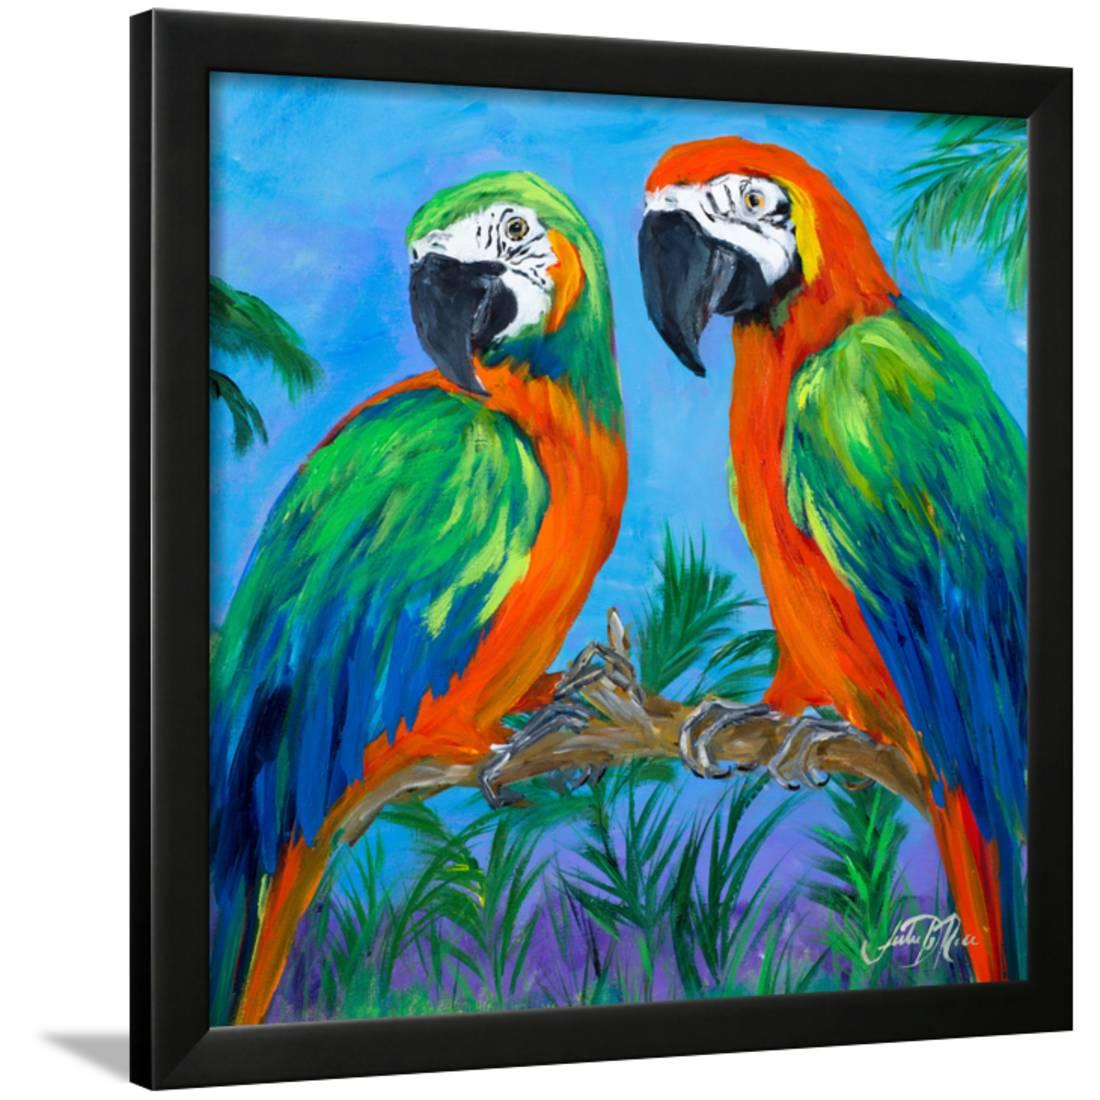 Island Birds Square I Framed Print Wall Artwork By Julie DeRice by Art.com